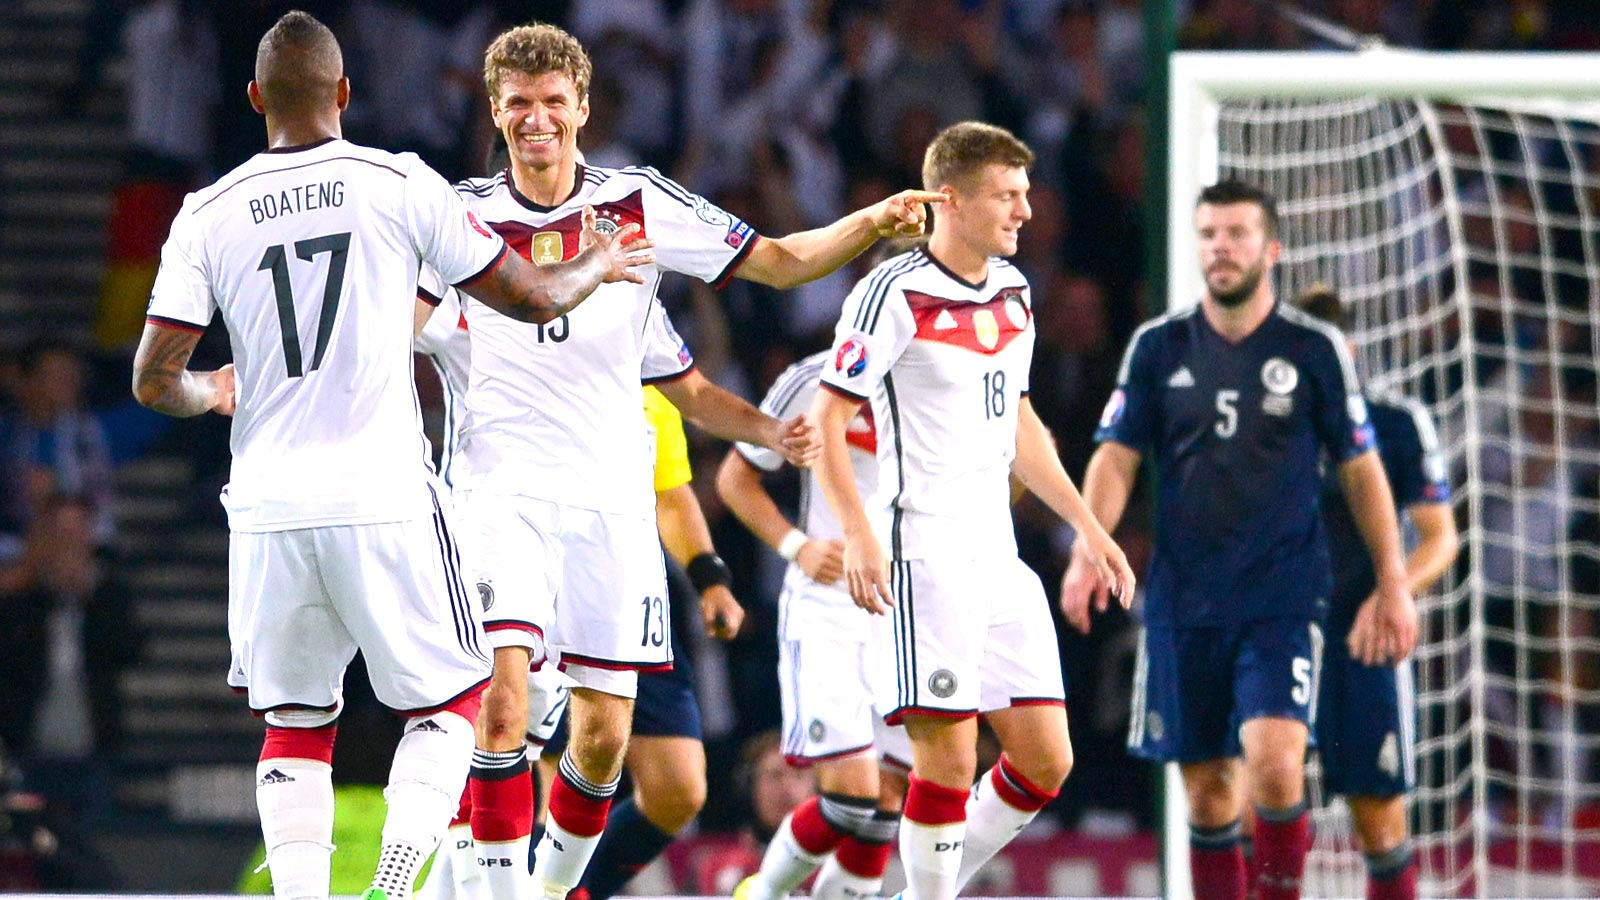 Germany jump to second in FIFA rankings, Spain up to sixth